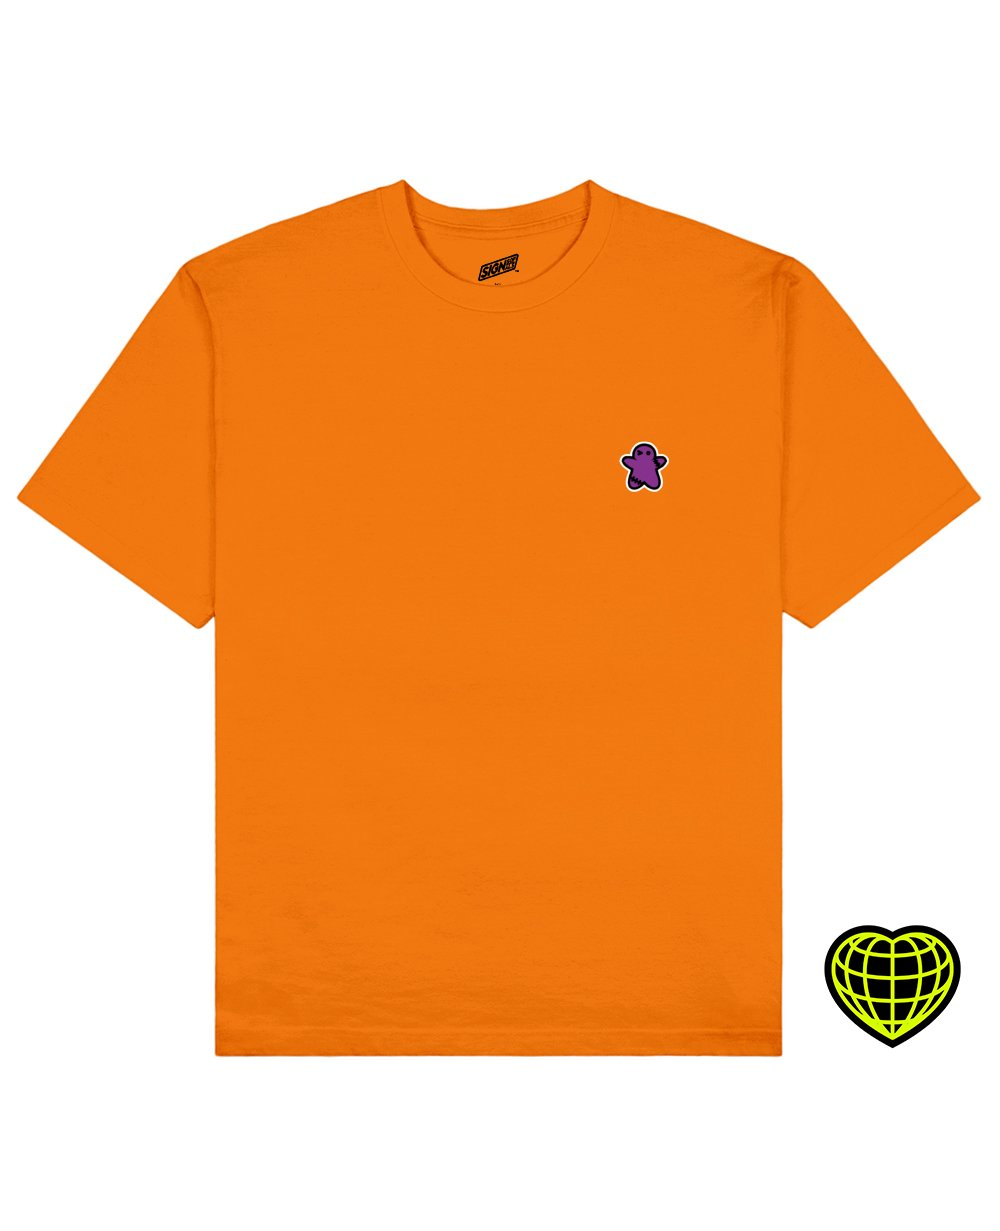 The Biscuit man Print T-shirt in Orange - T-Shirts - Signs of Signals - BRANMA